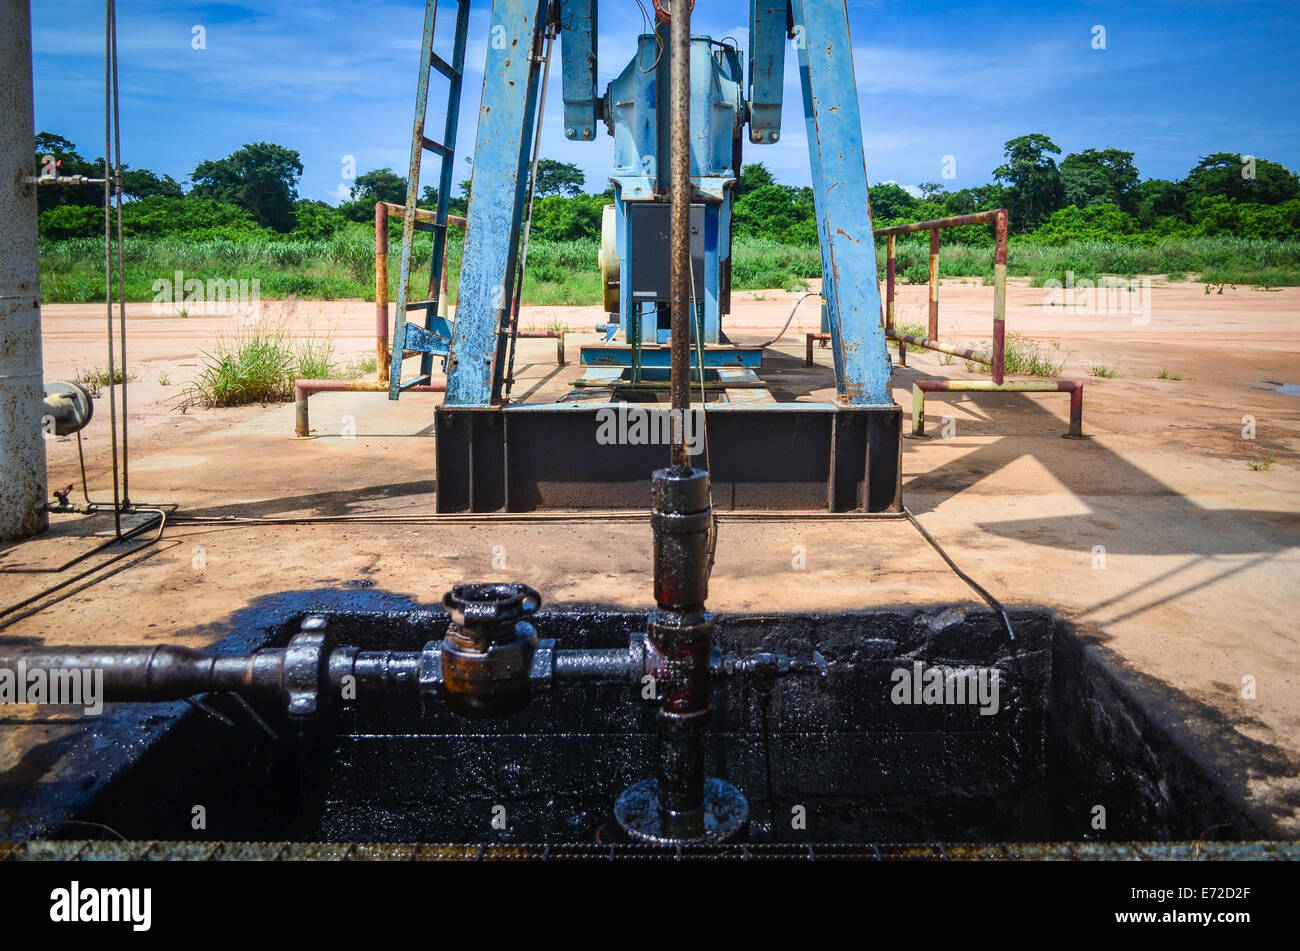 Onshore oil well (pumpjack) in Angola (Soyo province), close-up on the pump and petrol spill - Stock Image